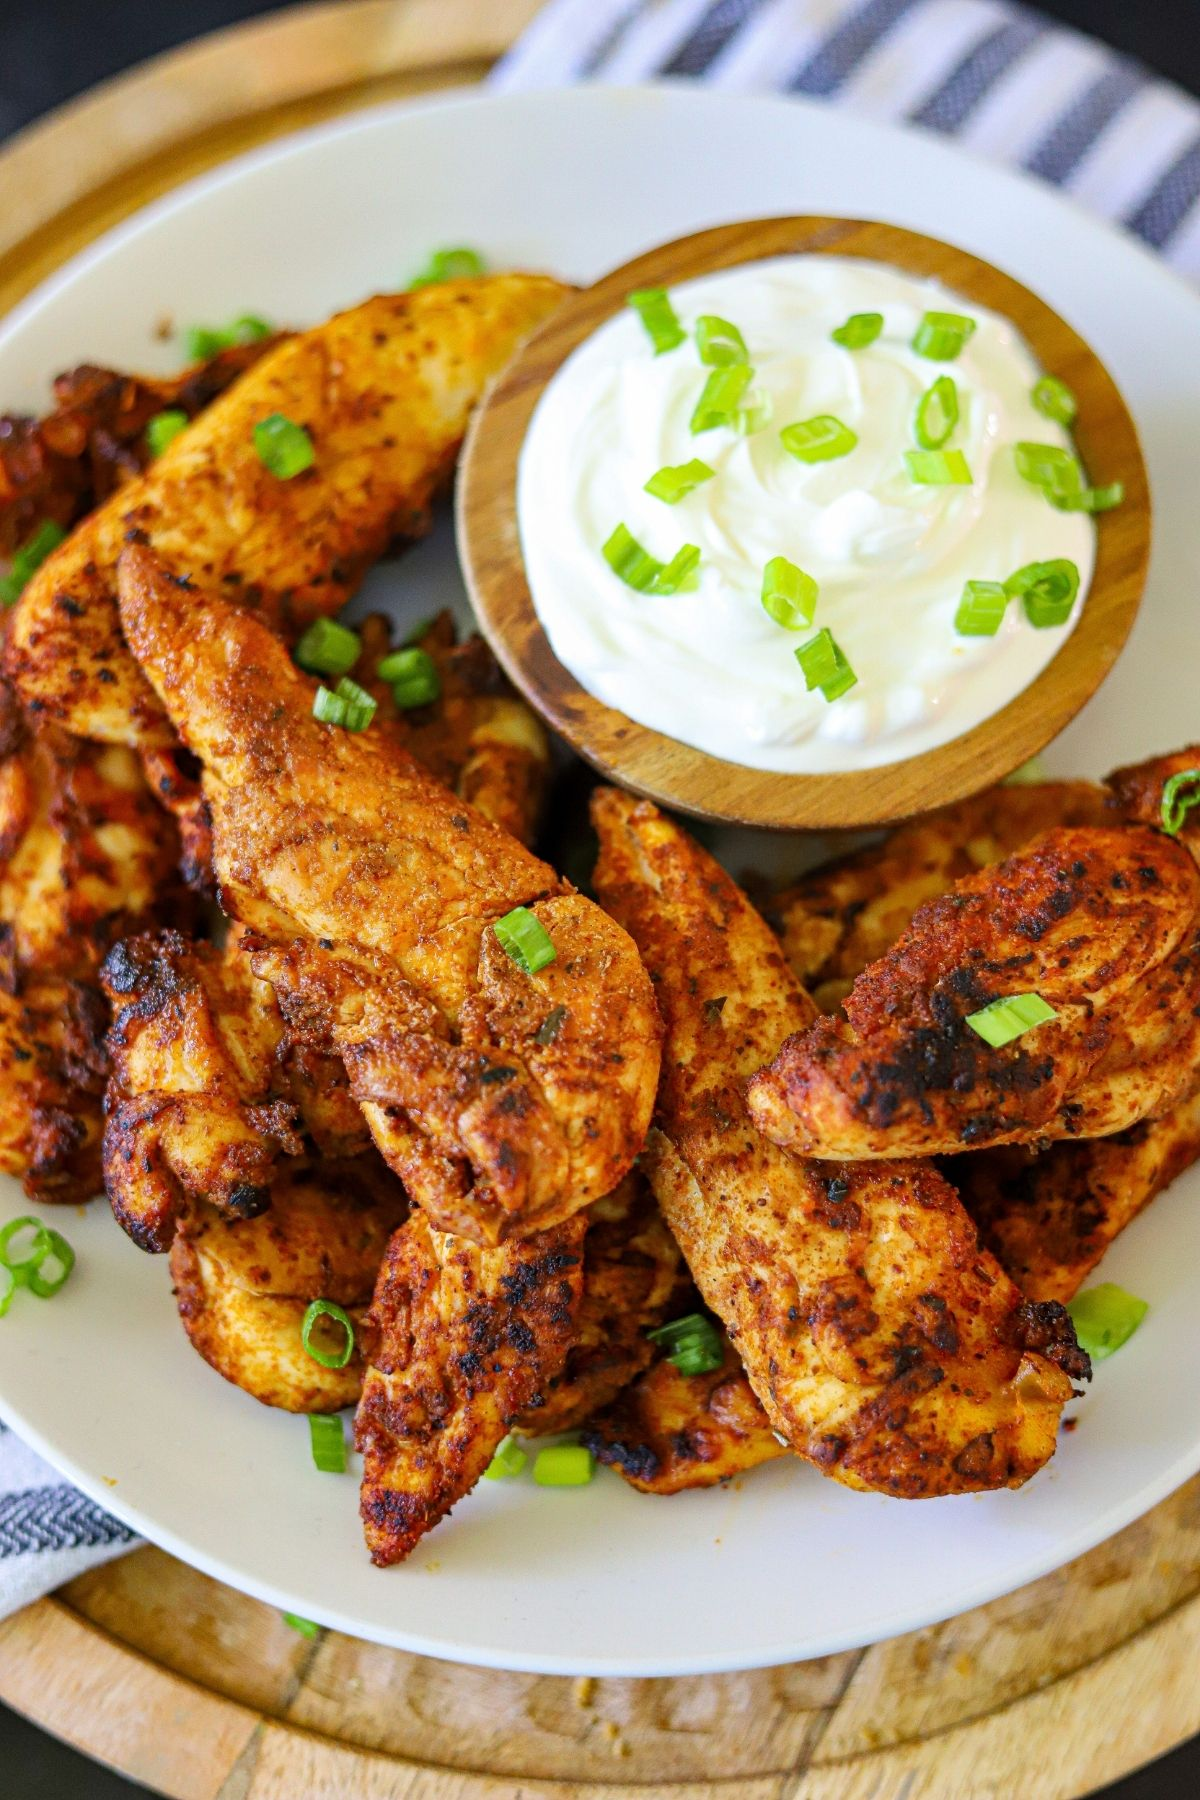 A plate full of chicken tenders cooked with blackening spice and garnished with sliced green onions and a dollop of sour cream.